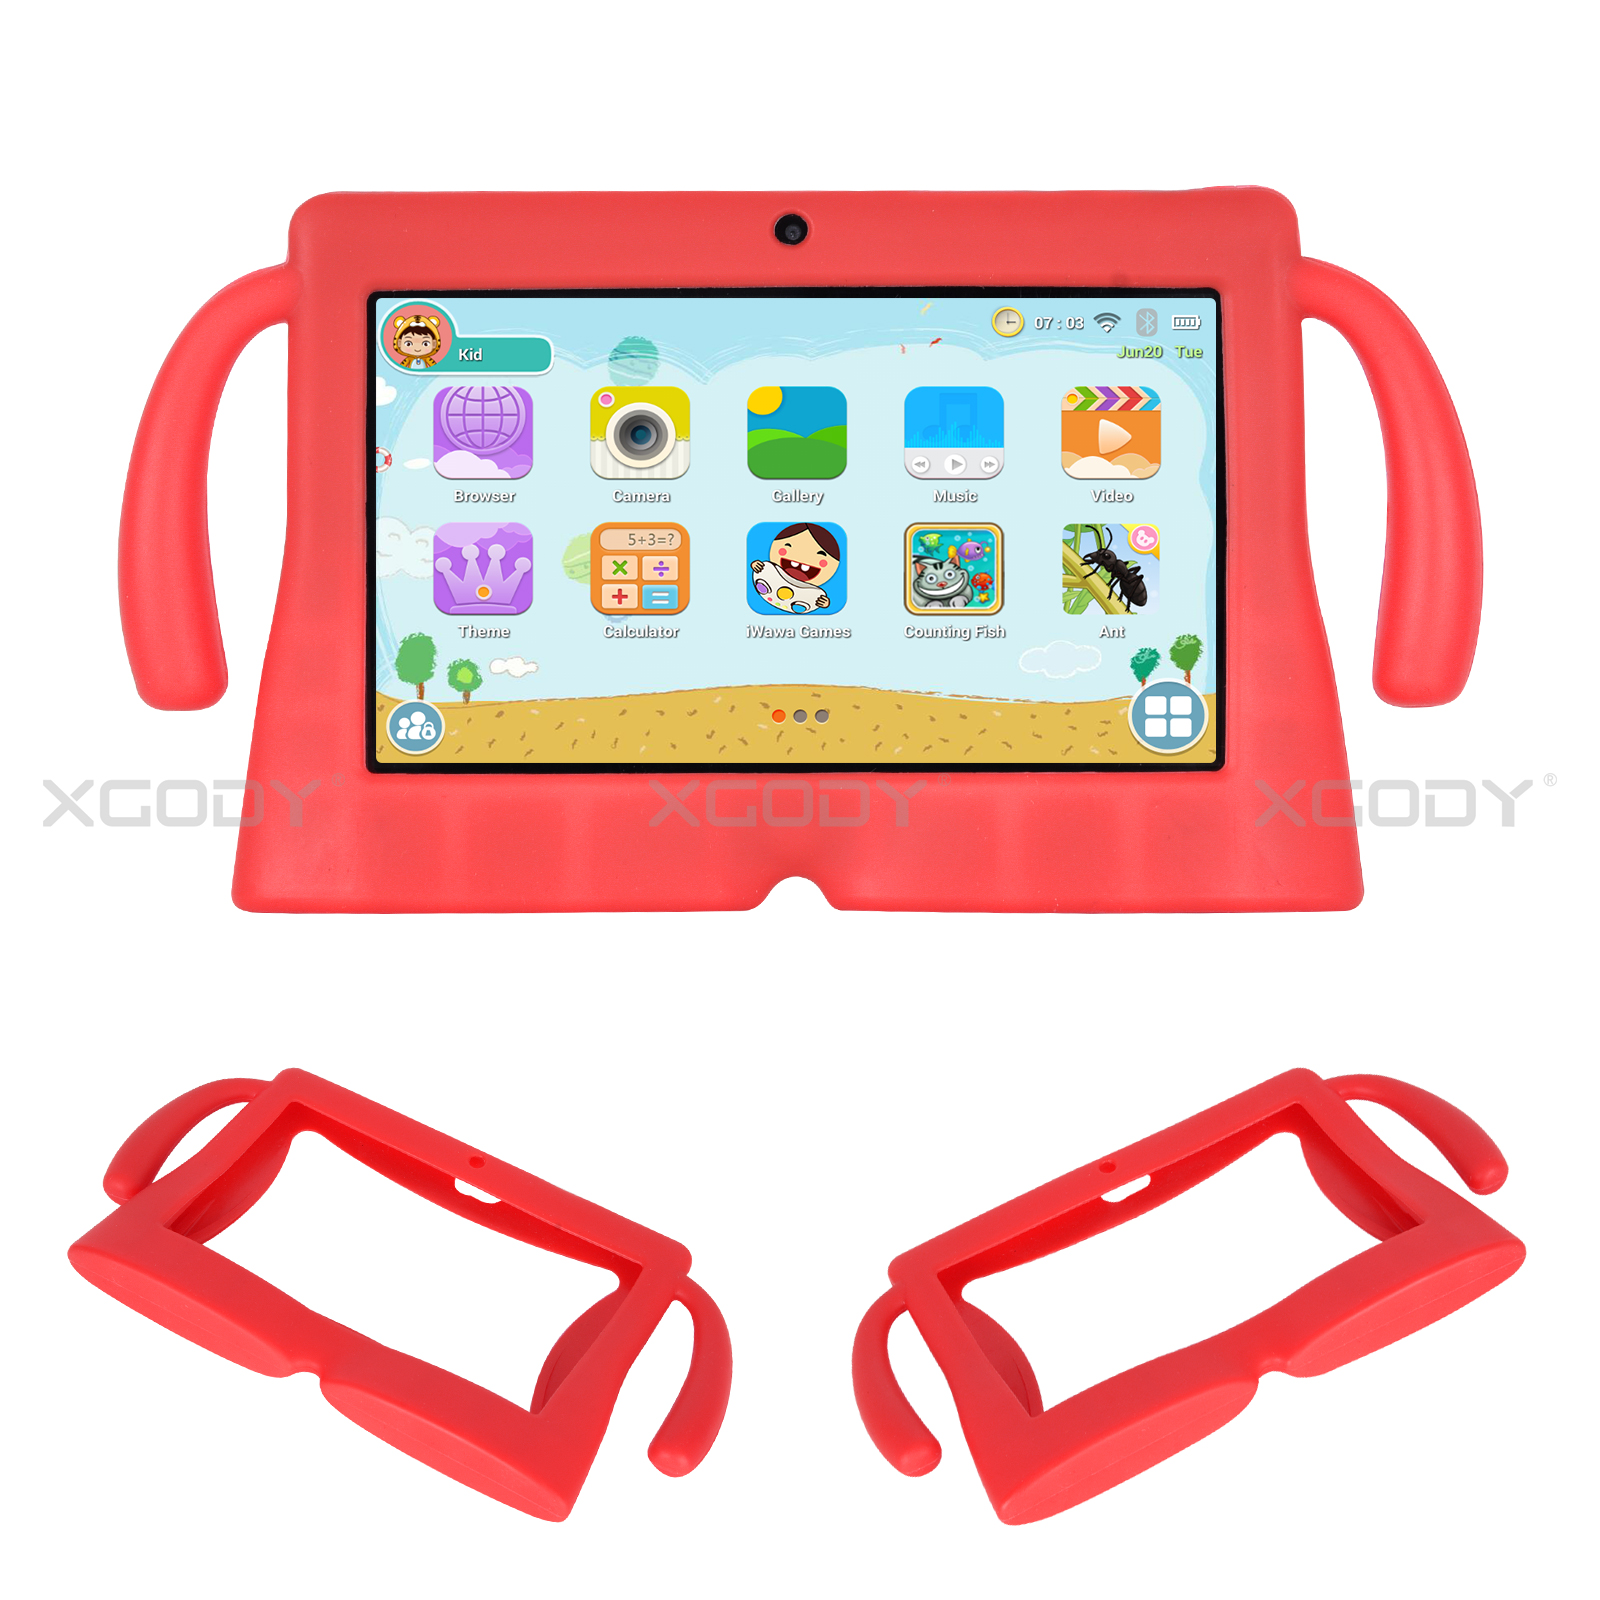 miniature 18 - Silicone Case Tablet Cover For Xgody 7 inch Tablet Waterproof Shockproof Cheap